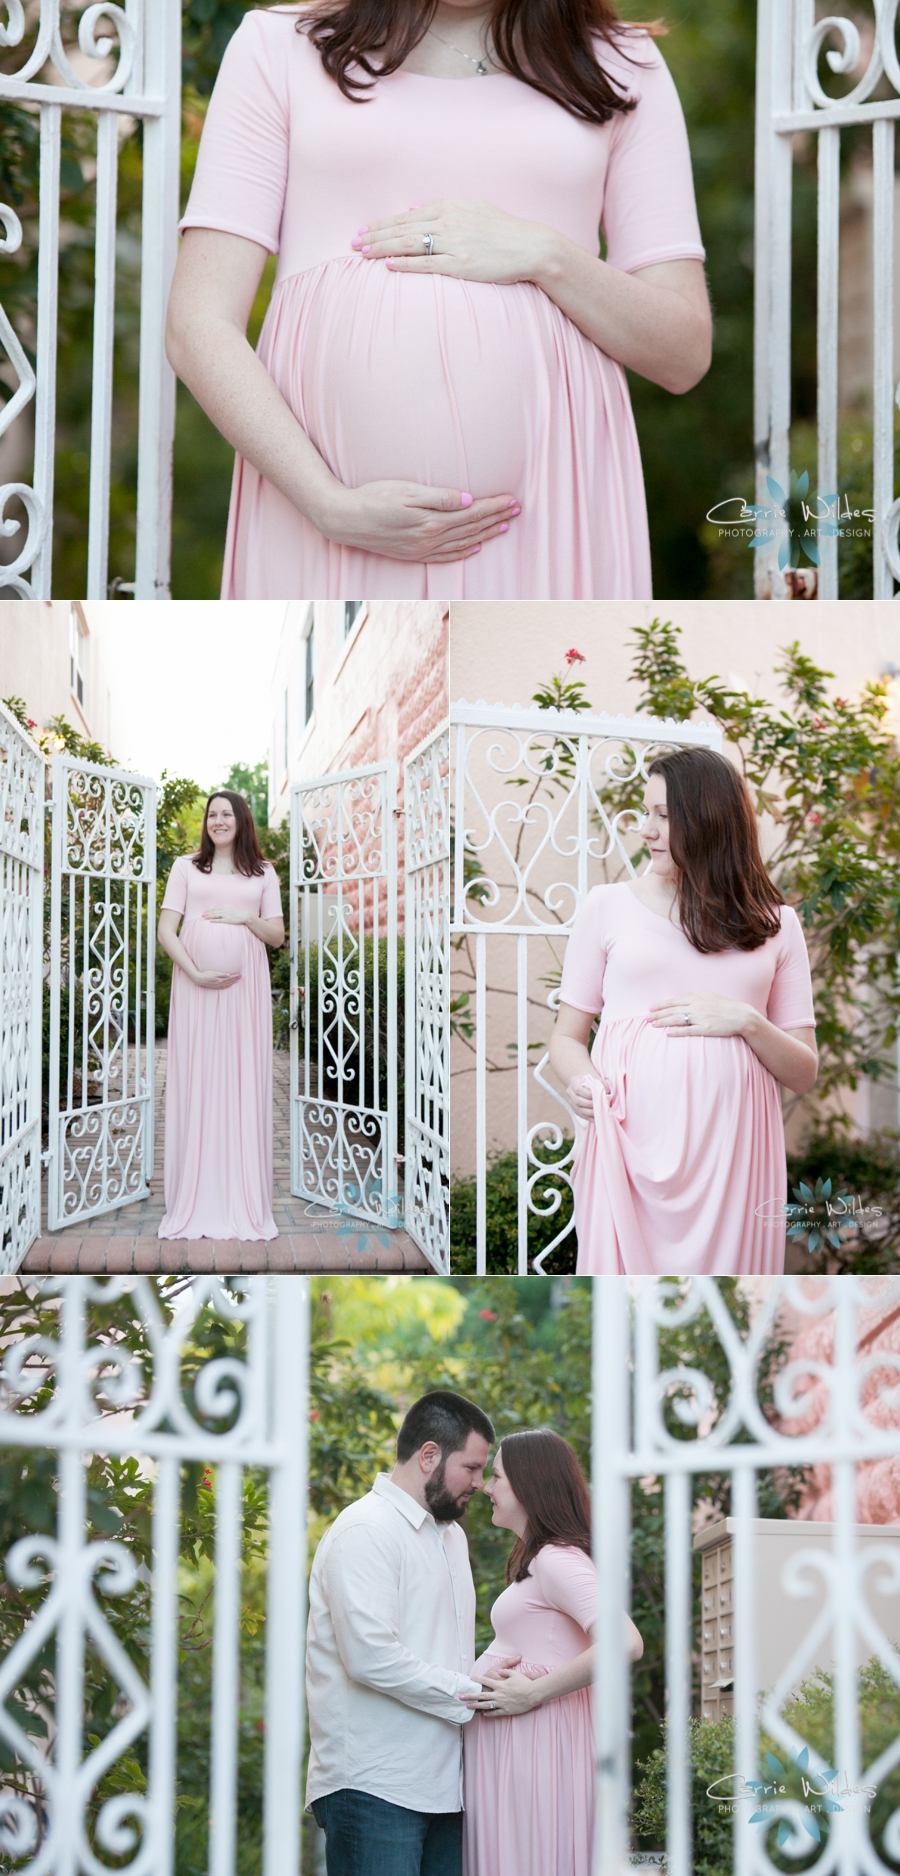 11_13_16 Pass A Grille Maternity Session_0001.jpg